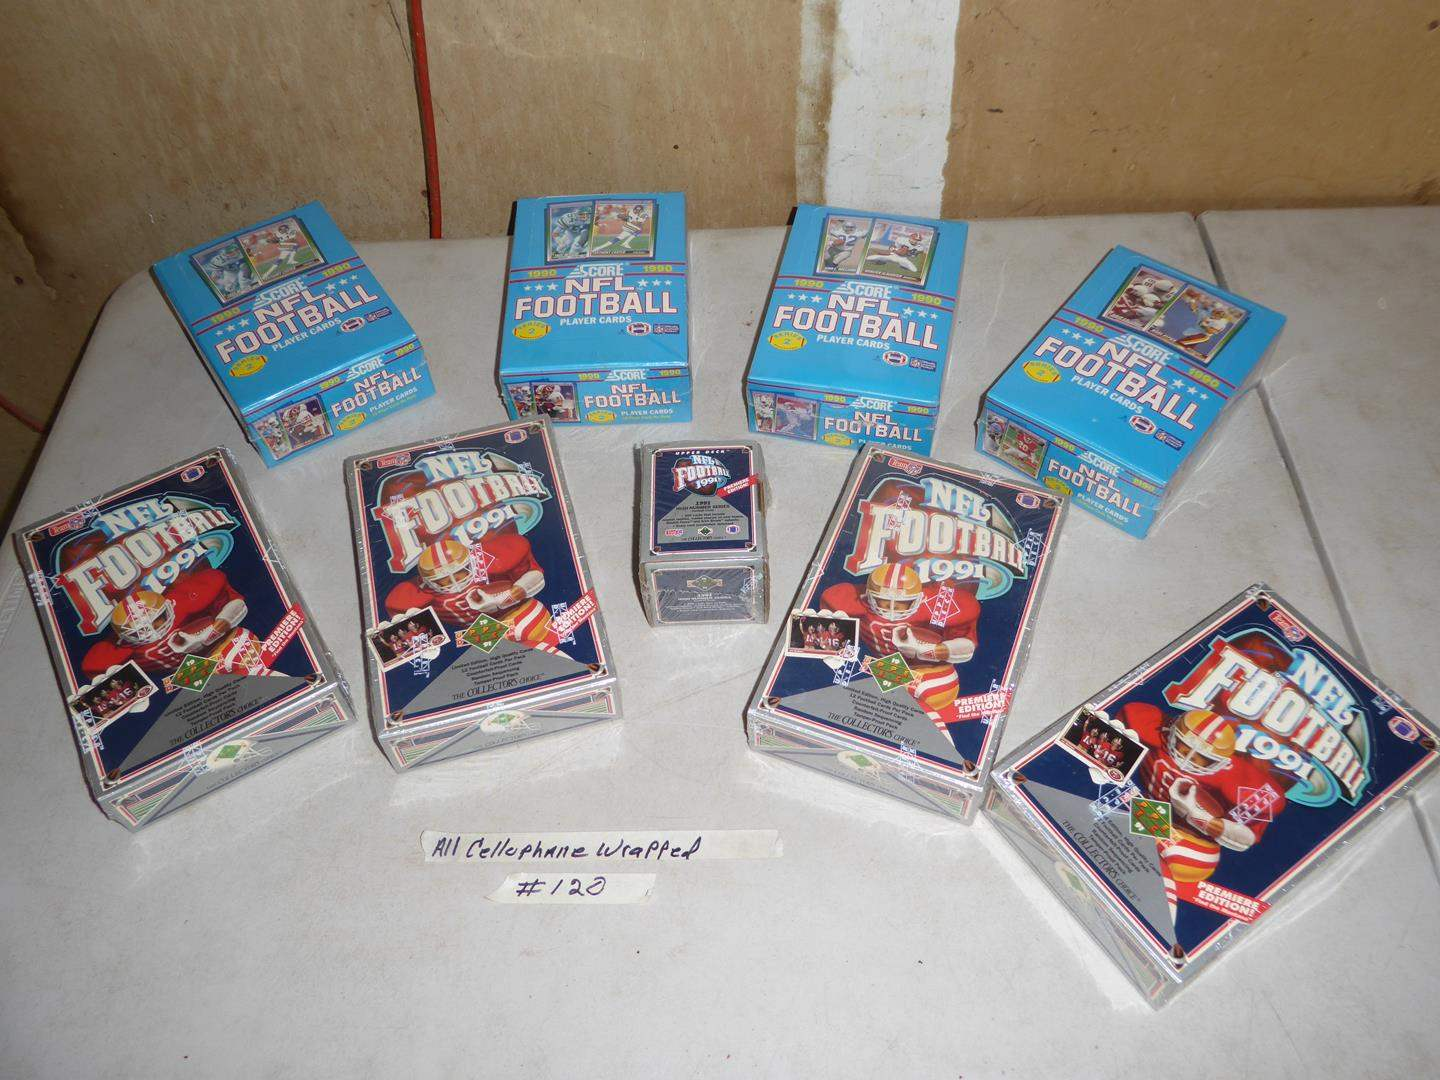 Lot # 420 - 9 Boxes Cellophane Wrapped NFL Football Cards 1990-1991 (main image)